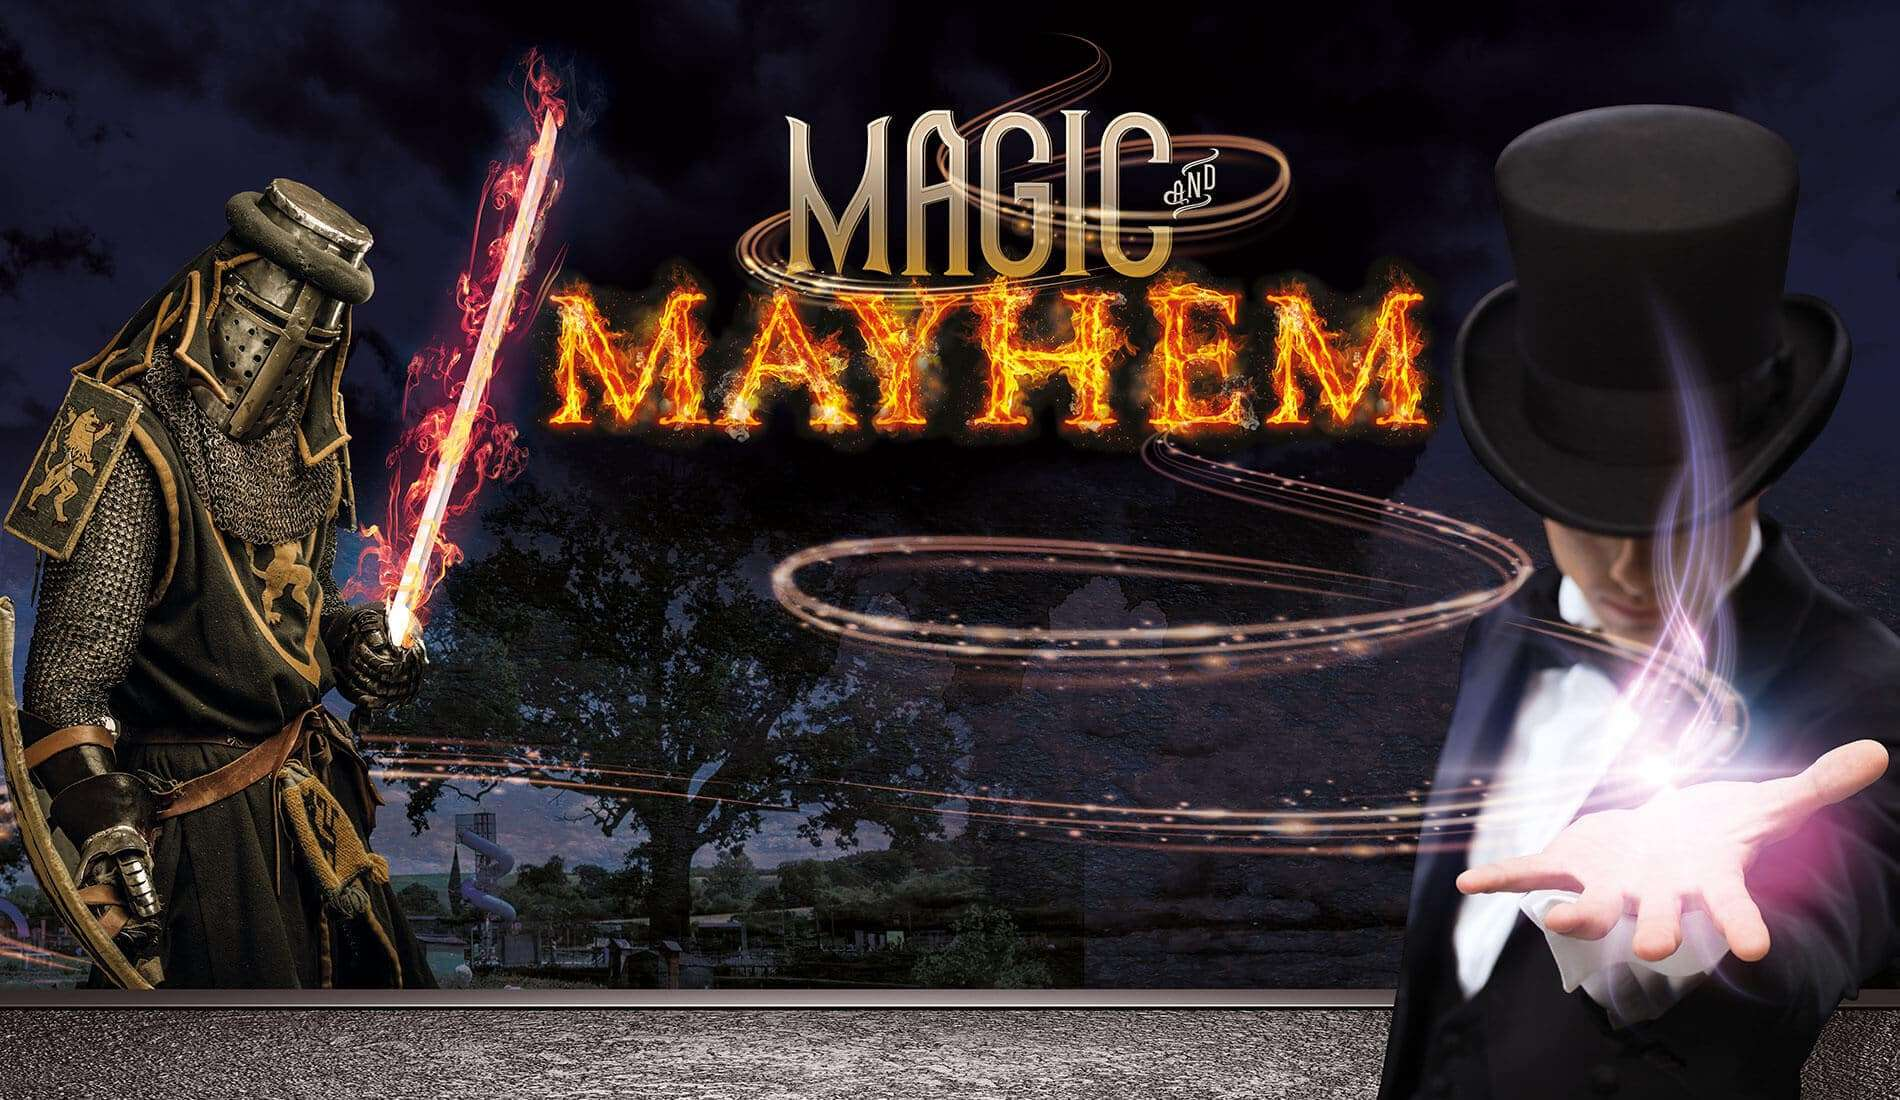 Hatton Magic and Mayhem design